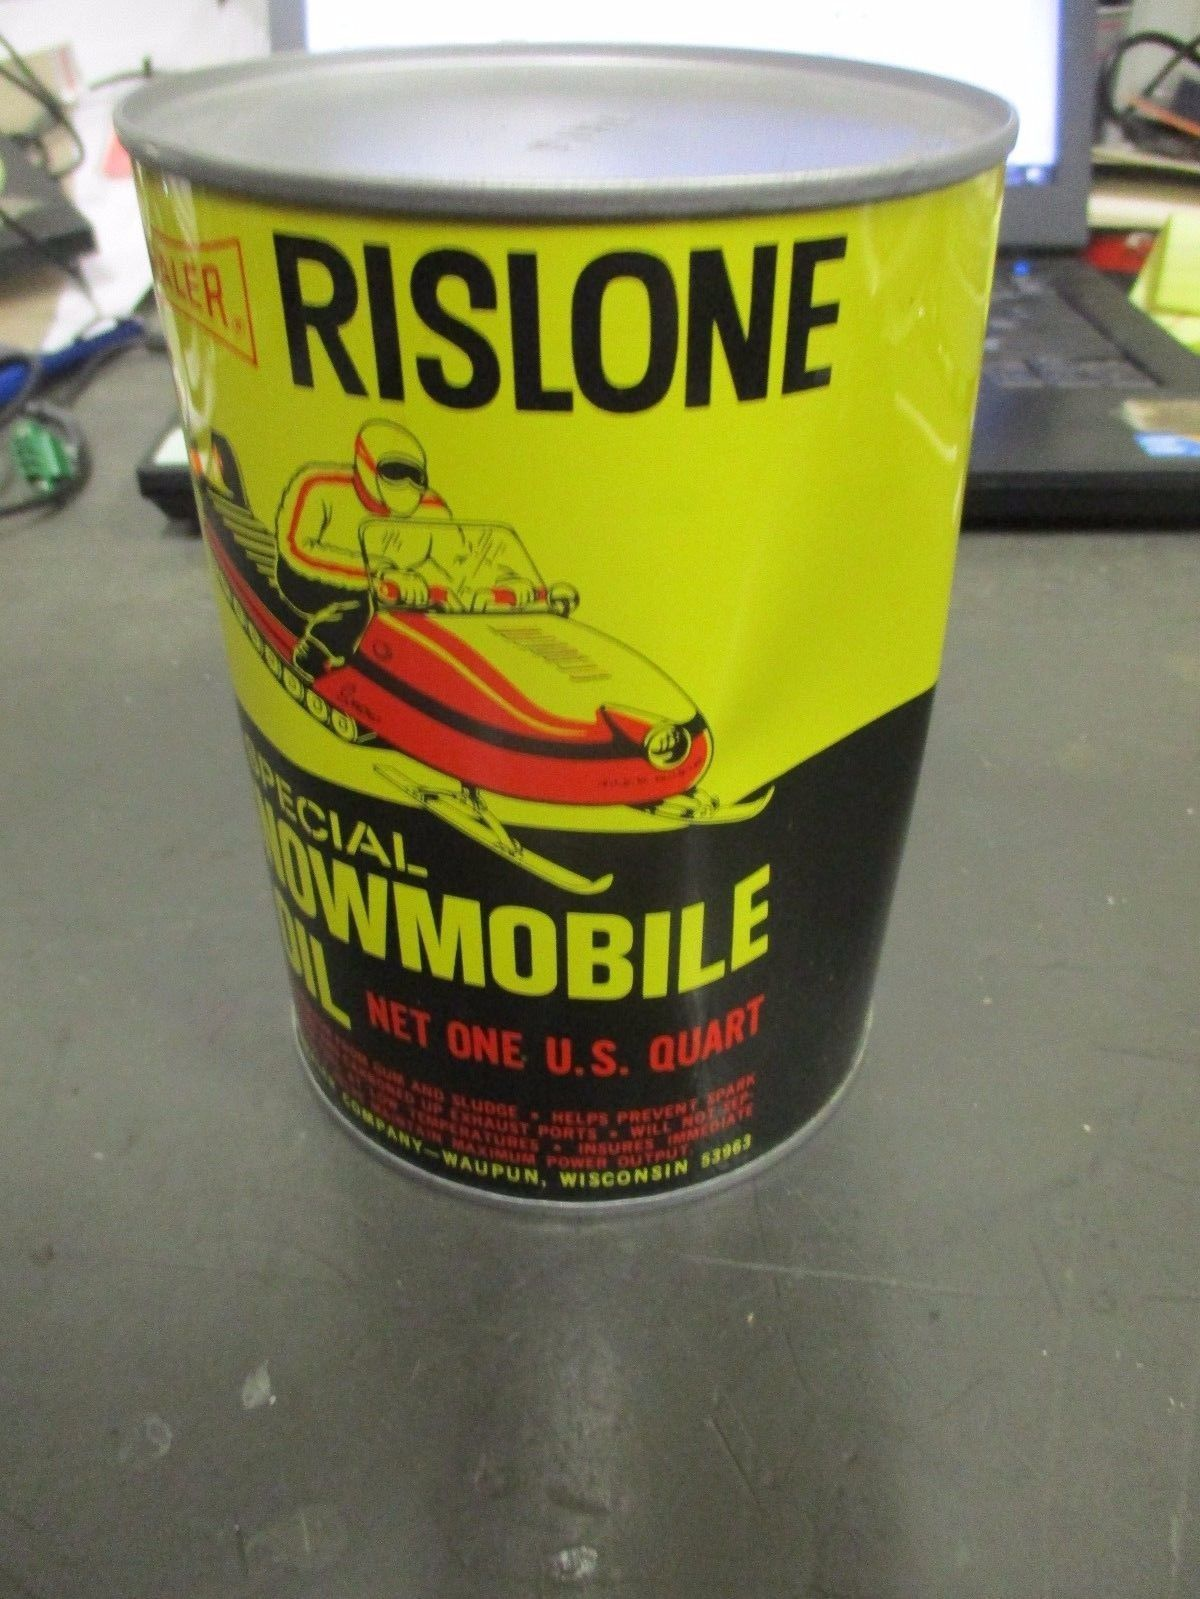 Primary image for DAMAGED/DENTED FULL VINTAGE RISLONE SNOWMOBILE OIL OLD 1965 1QT METAL CAN SHALER